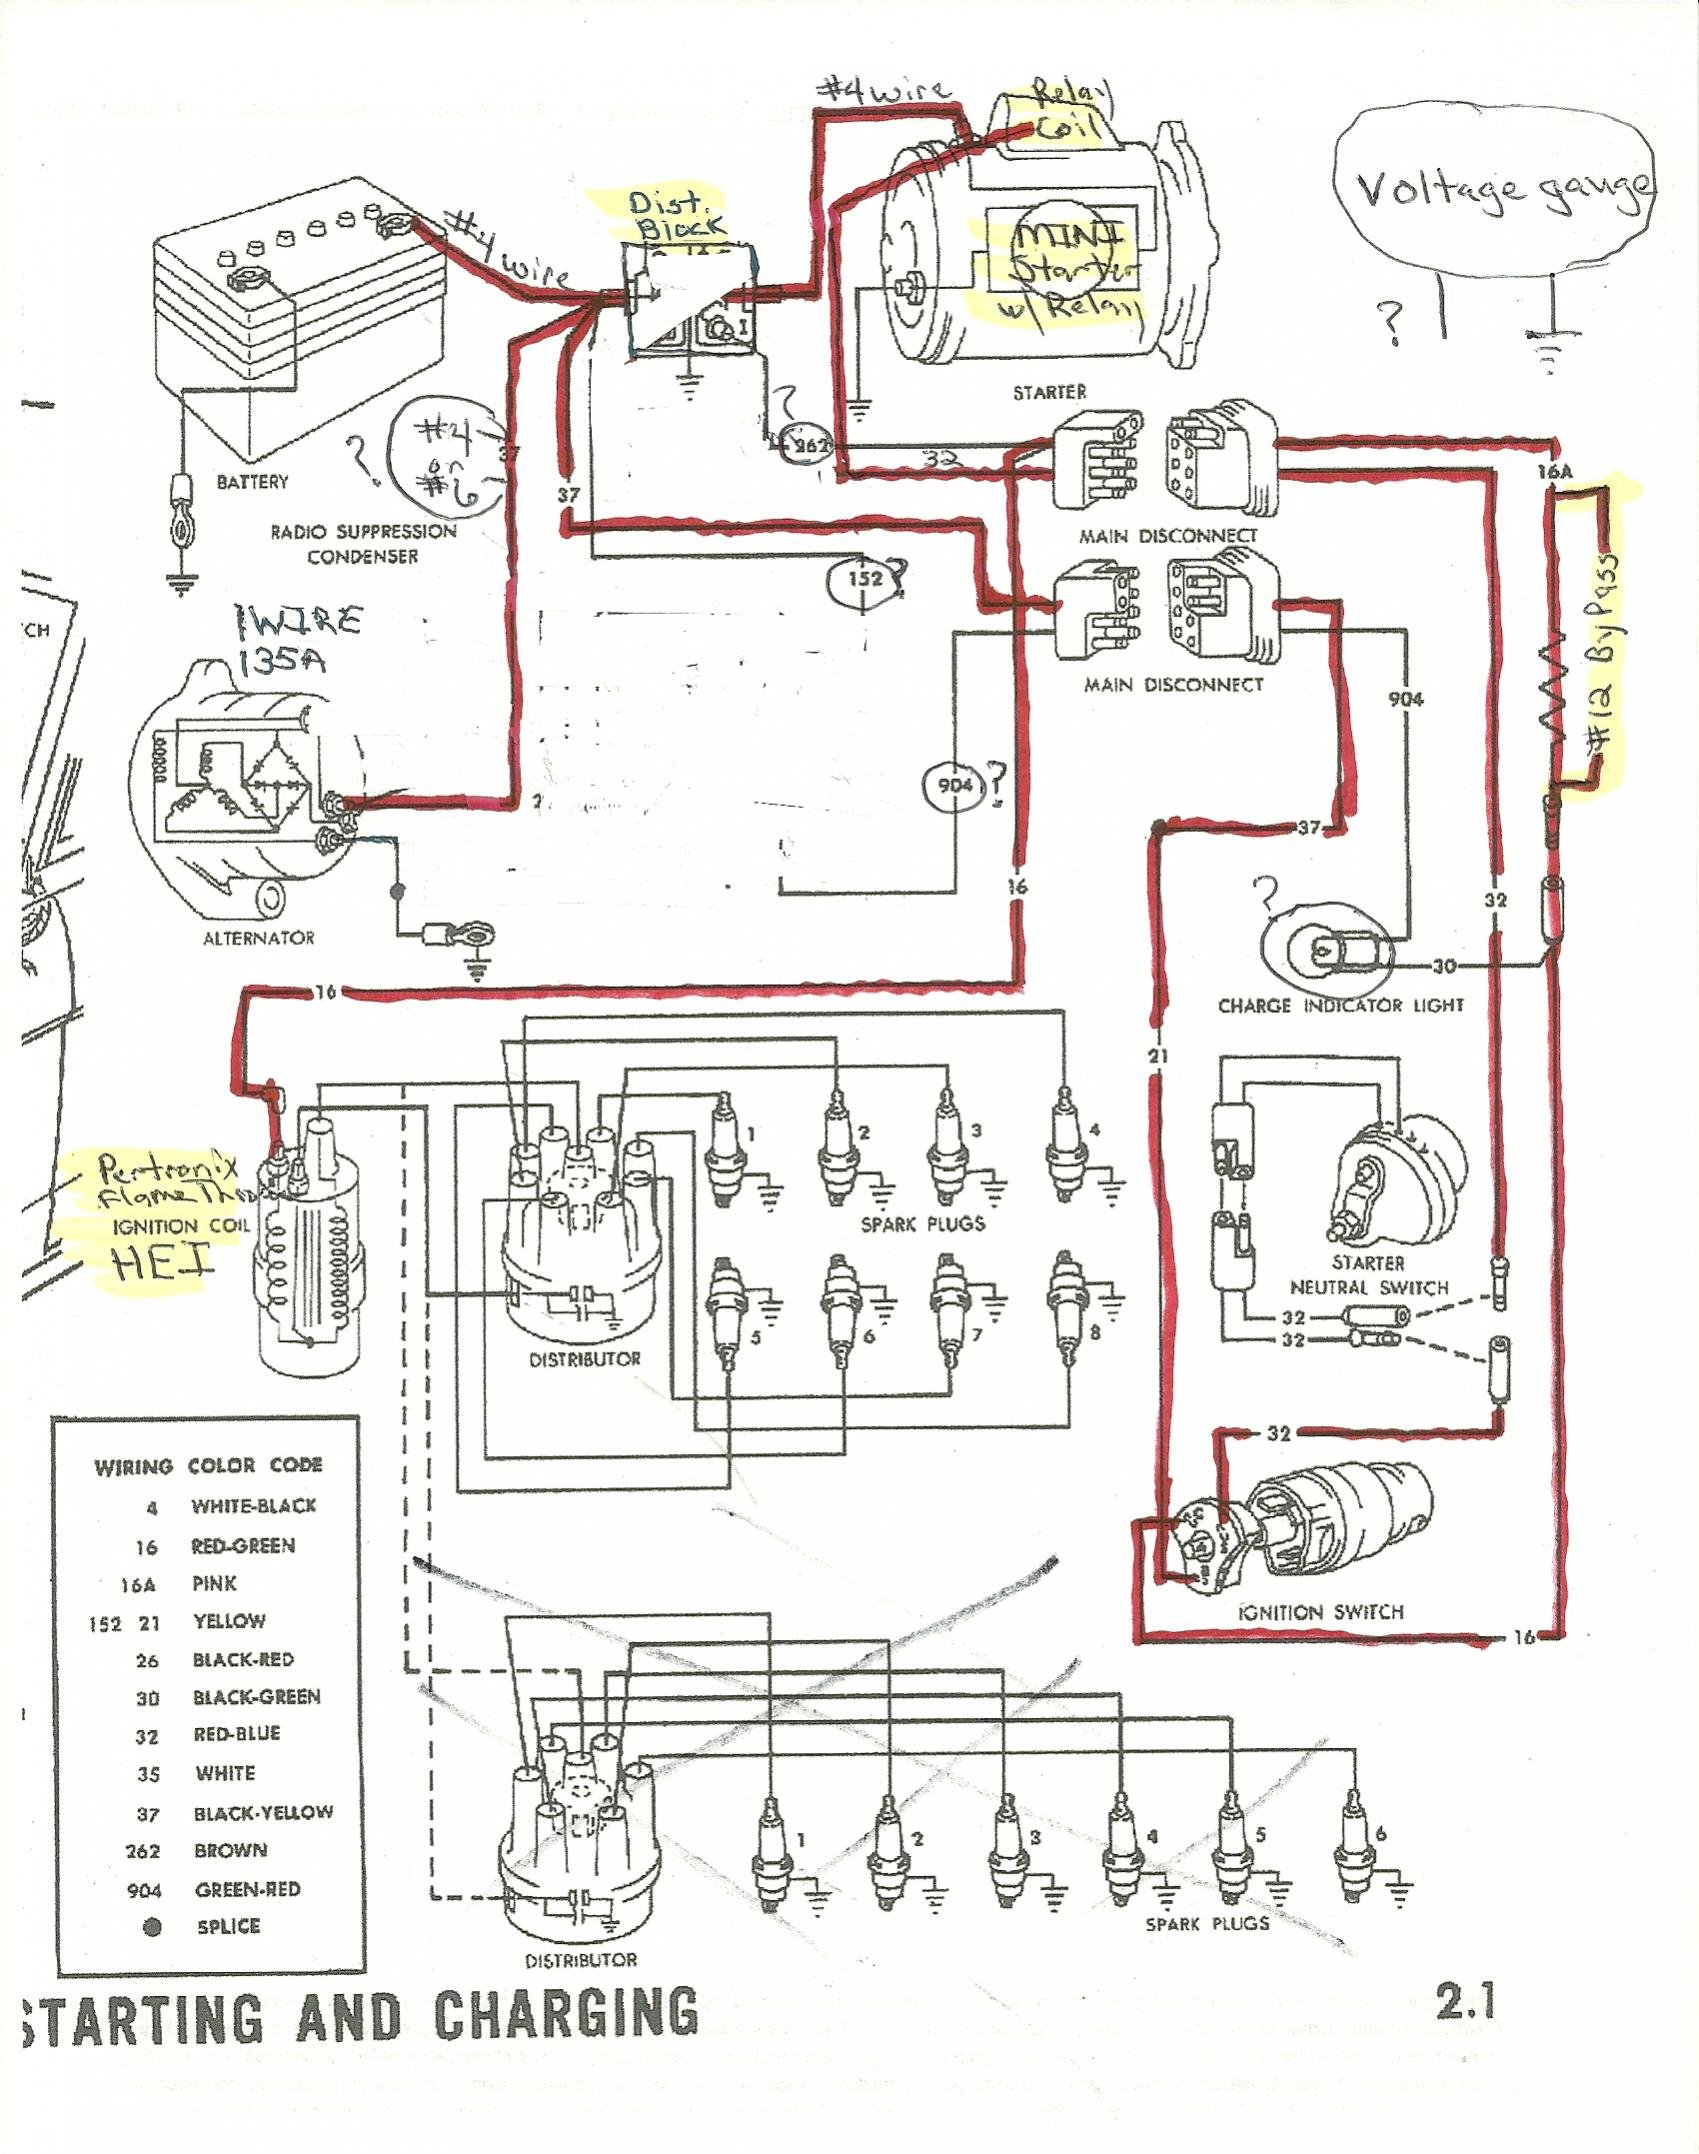 DIAGRAM] Wiring Diagram 1965 Mustang Alternator FULL Version HD Quality Mustang  Alternator - ZEEMANDIAGRAM.SFISP.ITsfisp.it